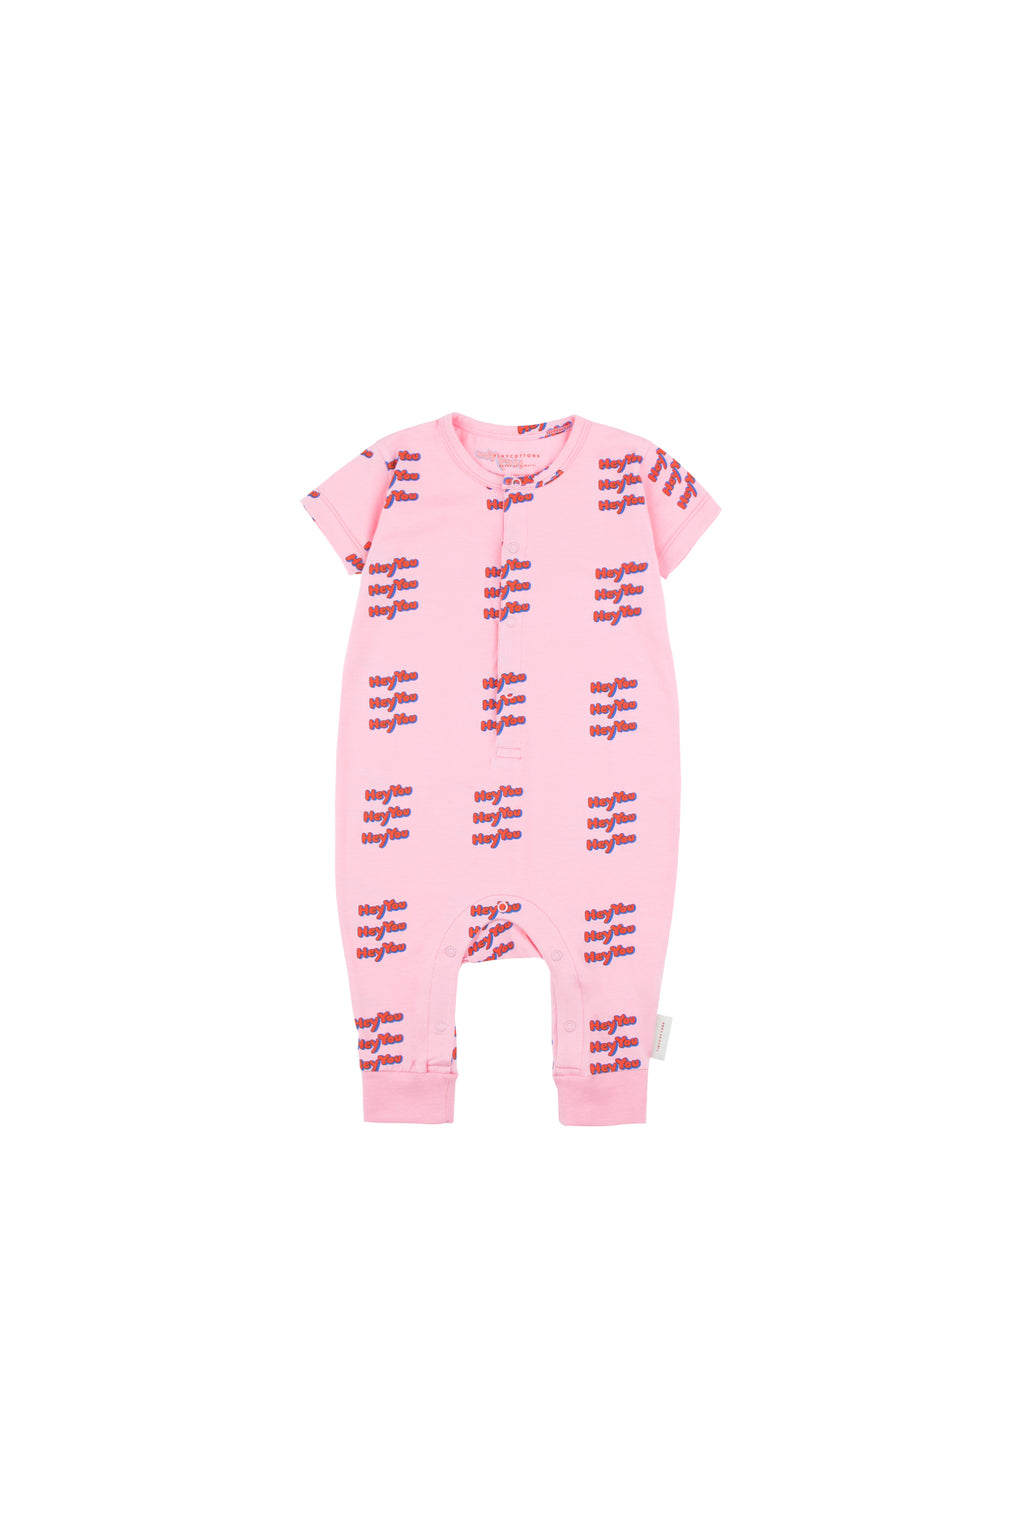 Tiny Cottons 'Hey You' One Piece - Pink/Red